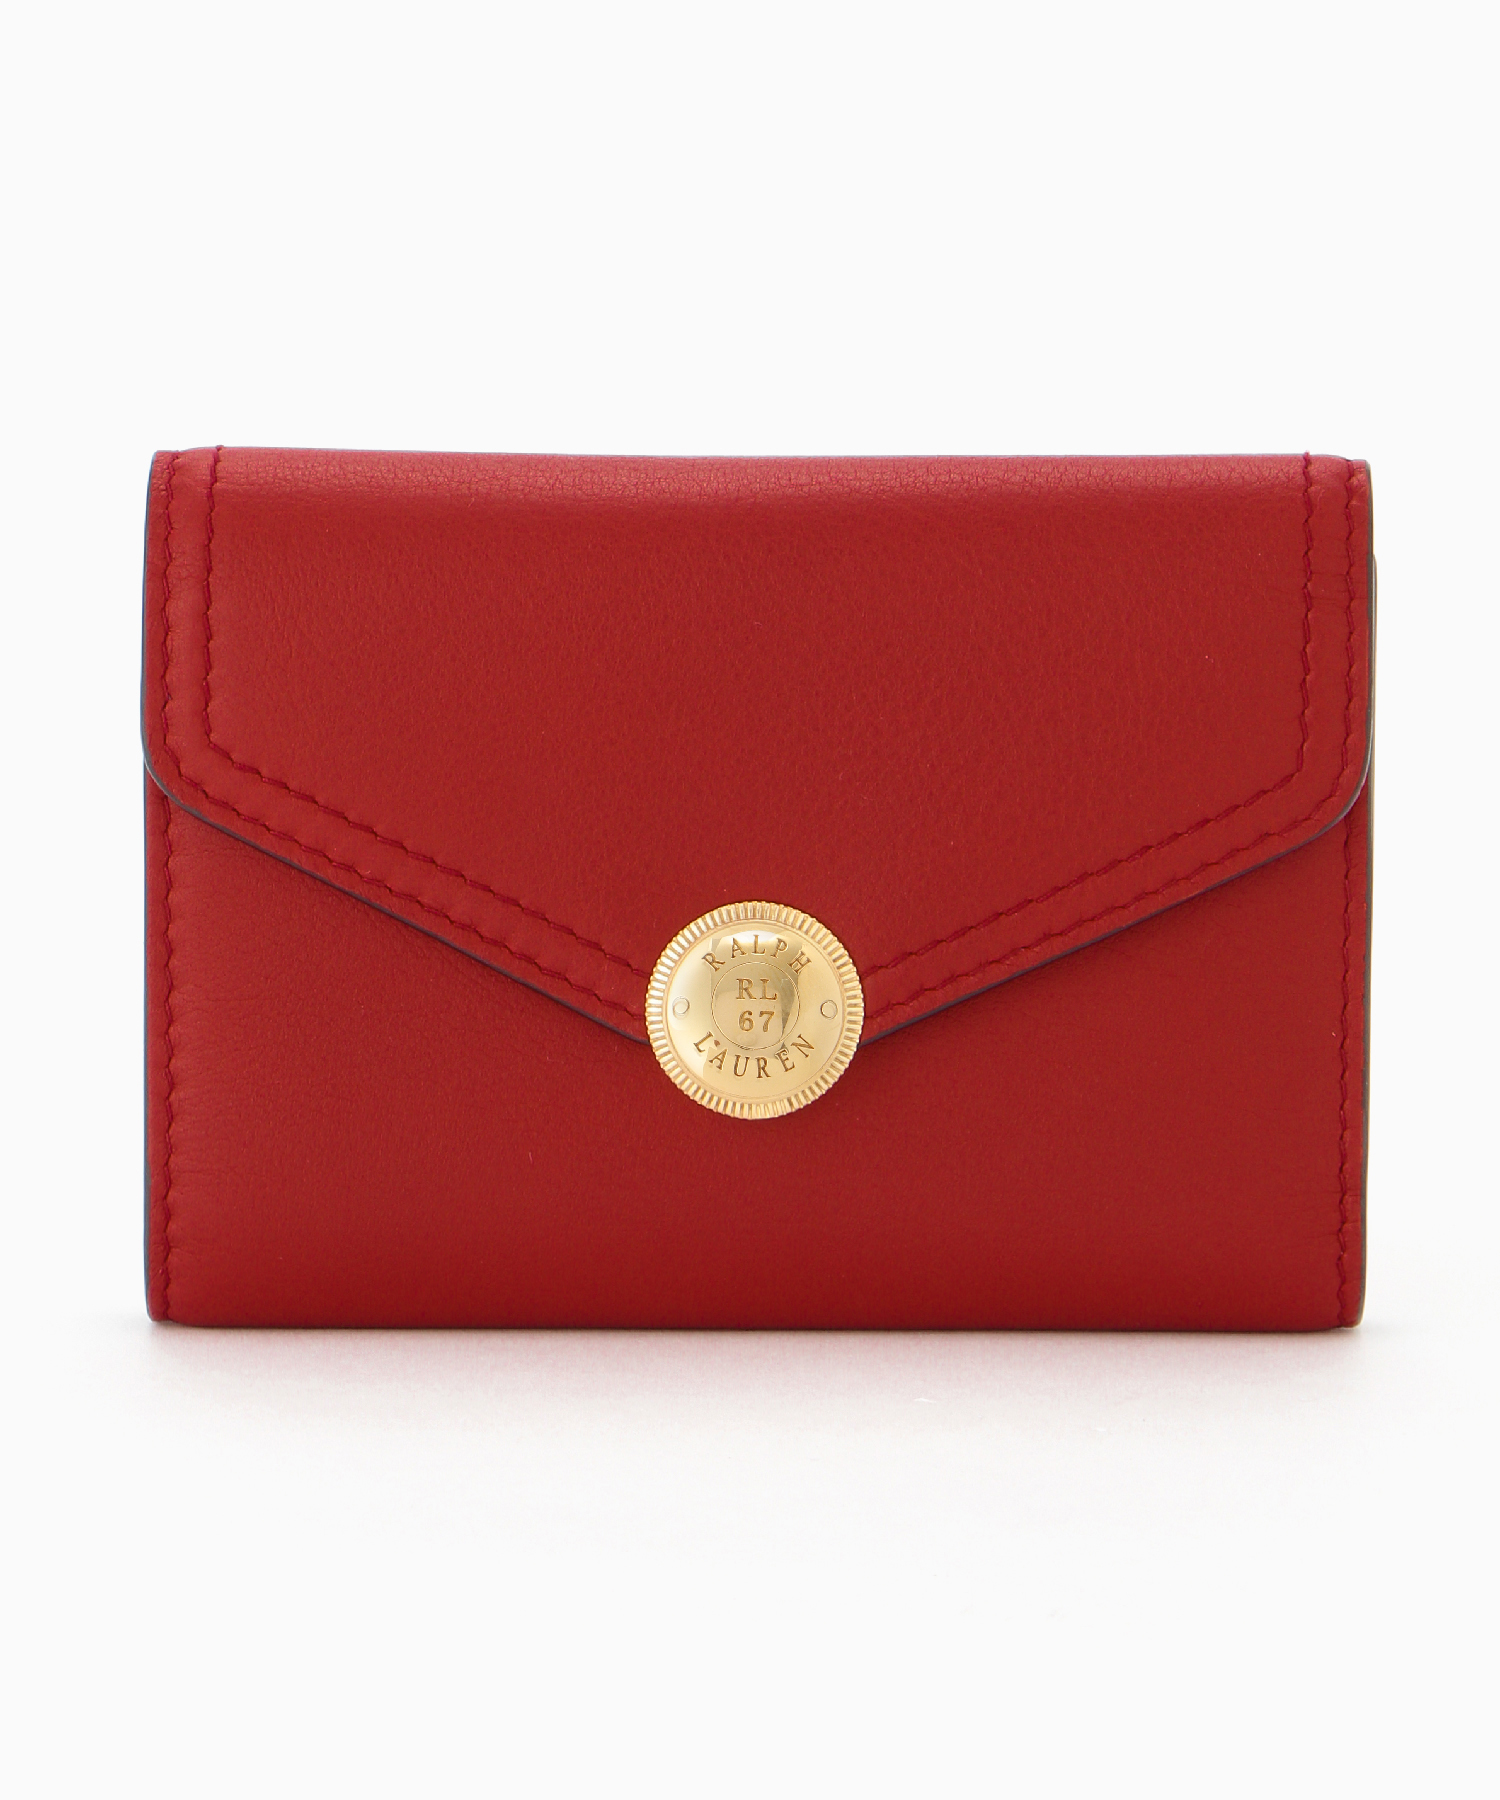 LOGO SNAP FRENCH PURSE_DEEP RED